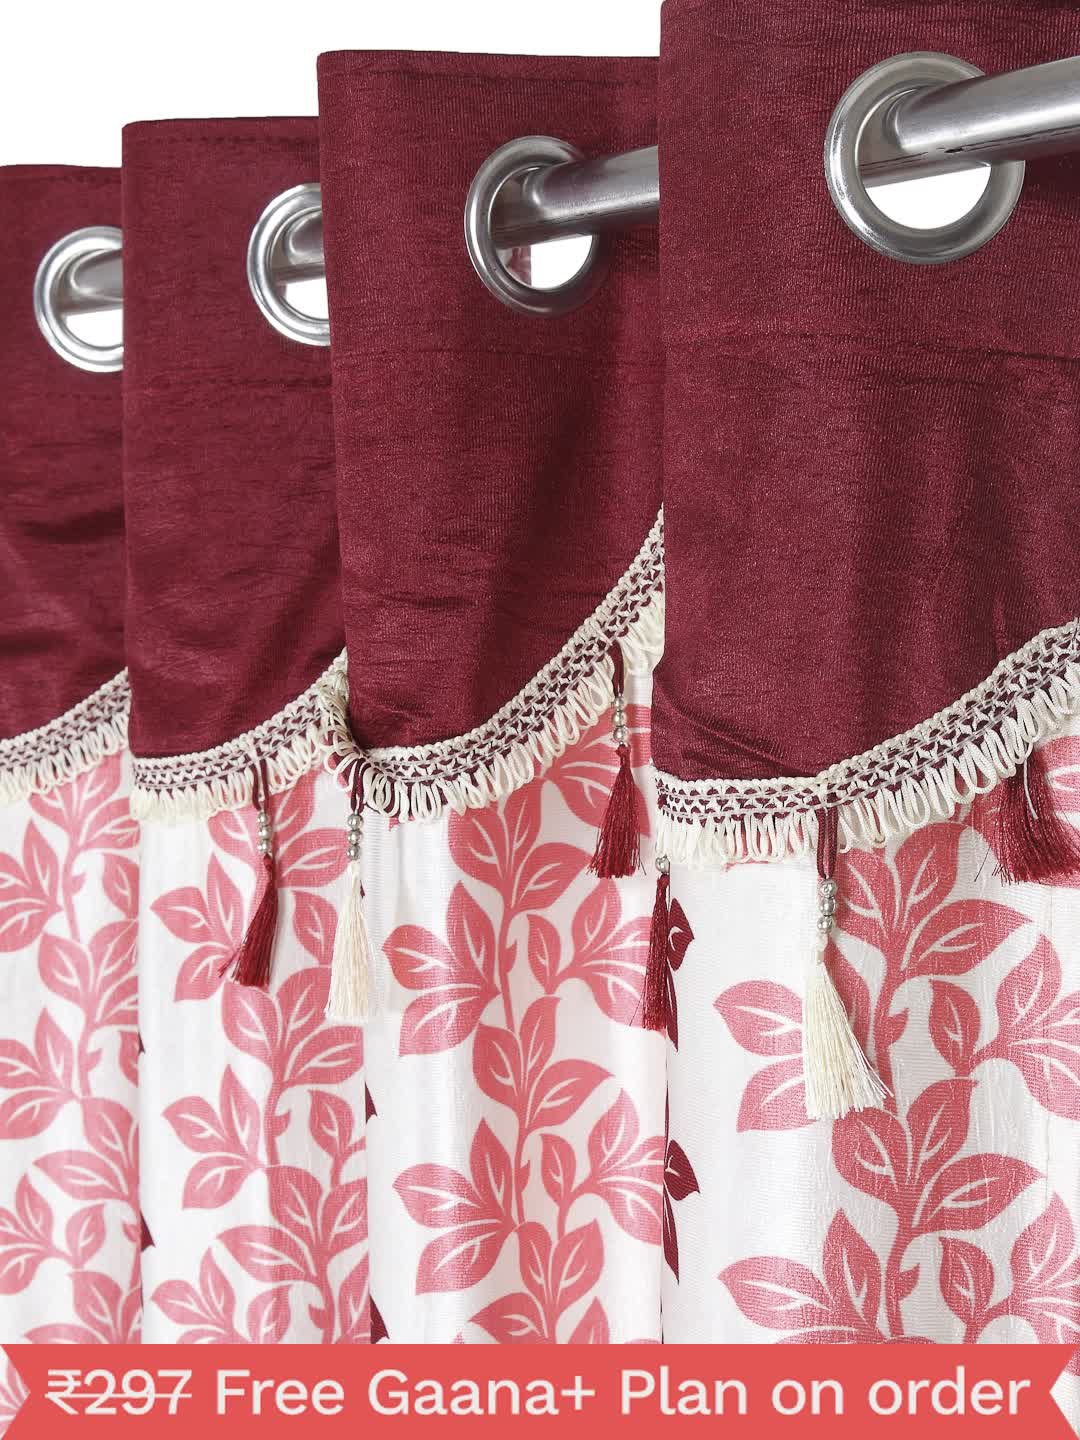 Cortina - Pack of 2 Decorative, Fancy, Eyelet Window Curtain set (150 x 115 cm), All over Leafy pattern, Maroon, Fringe and tassle detail  - 1, Small